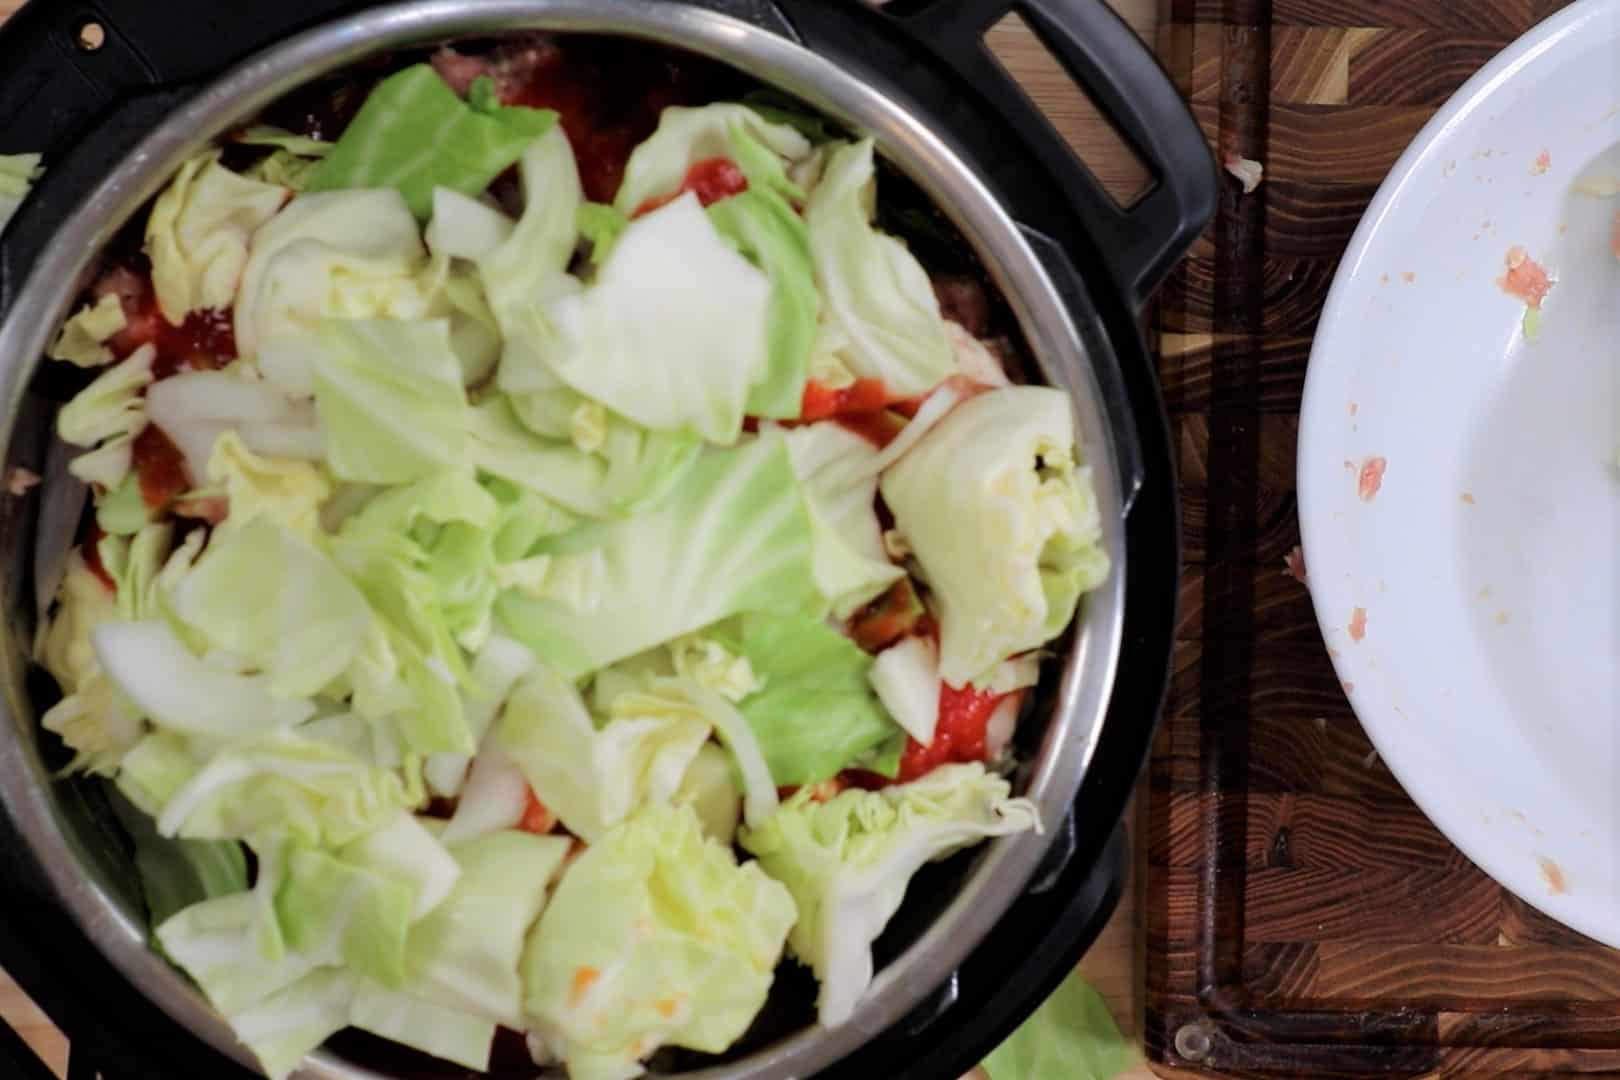 Full Instant Pot of Low Carb Unstuffed Cabbage Rolls